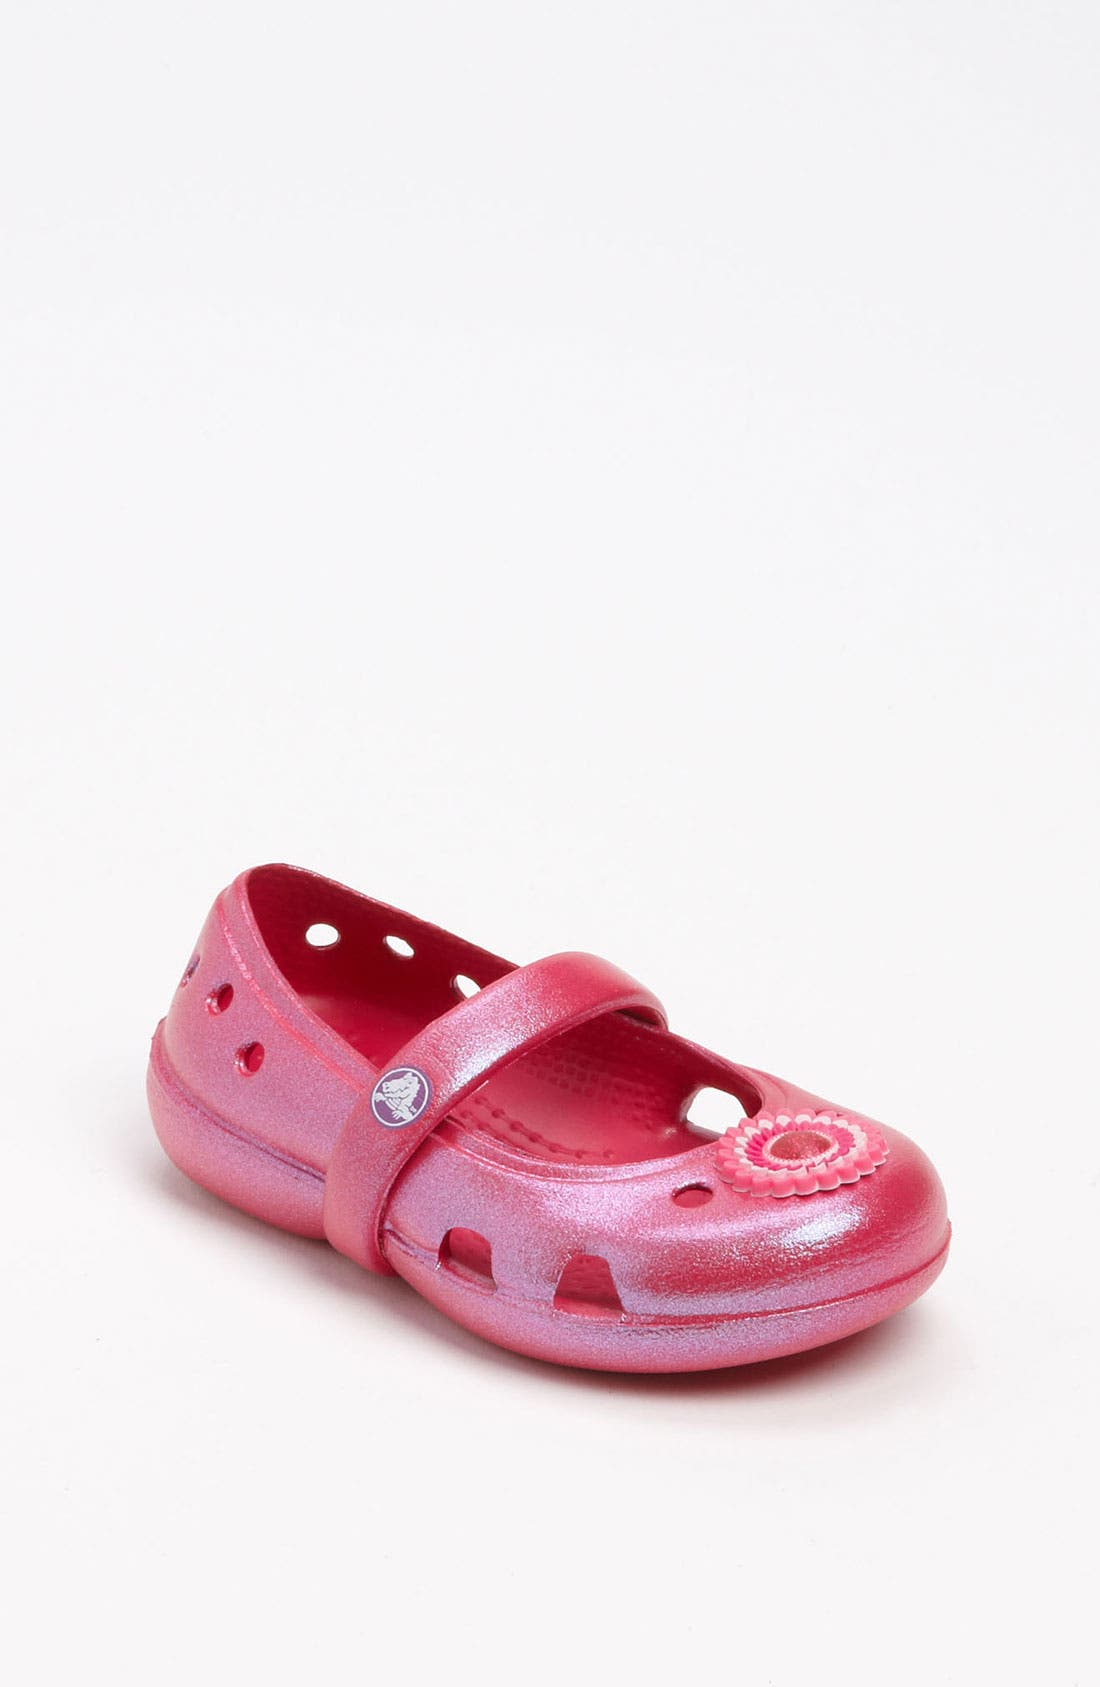 Alternate Image 1 Selected - CROCS™ 'Keeley Iridescent' Mary Jane (Walker, Toddler & Little Kid)